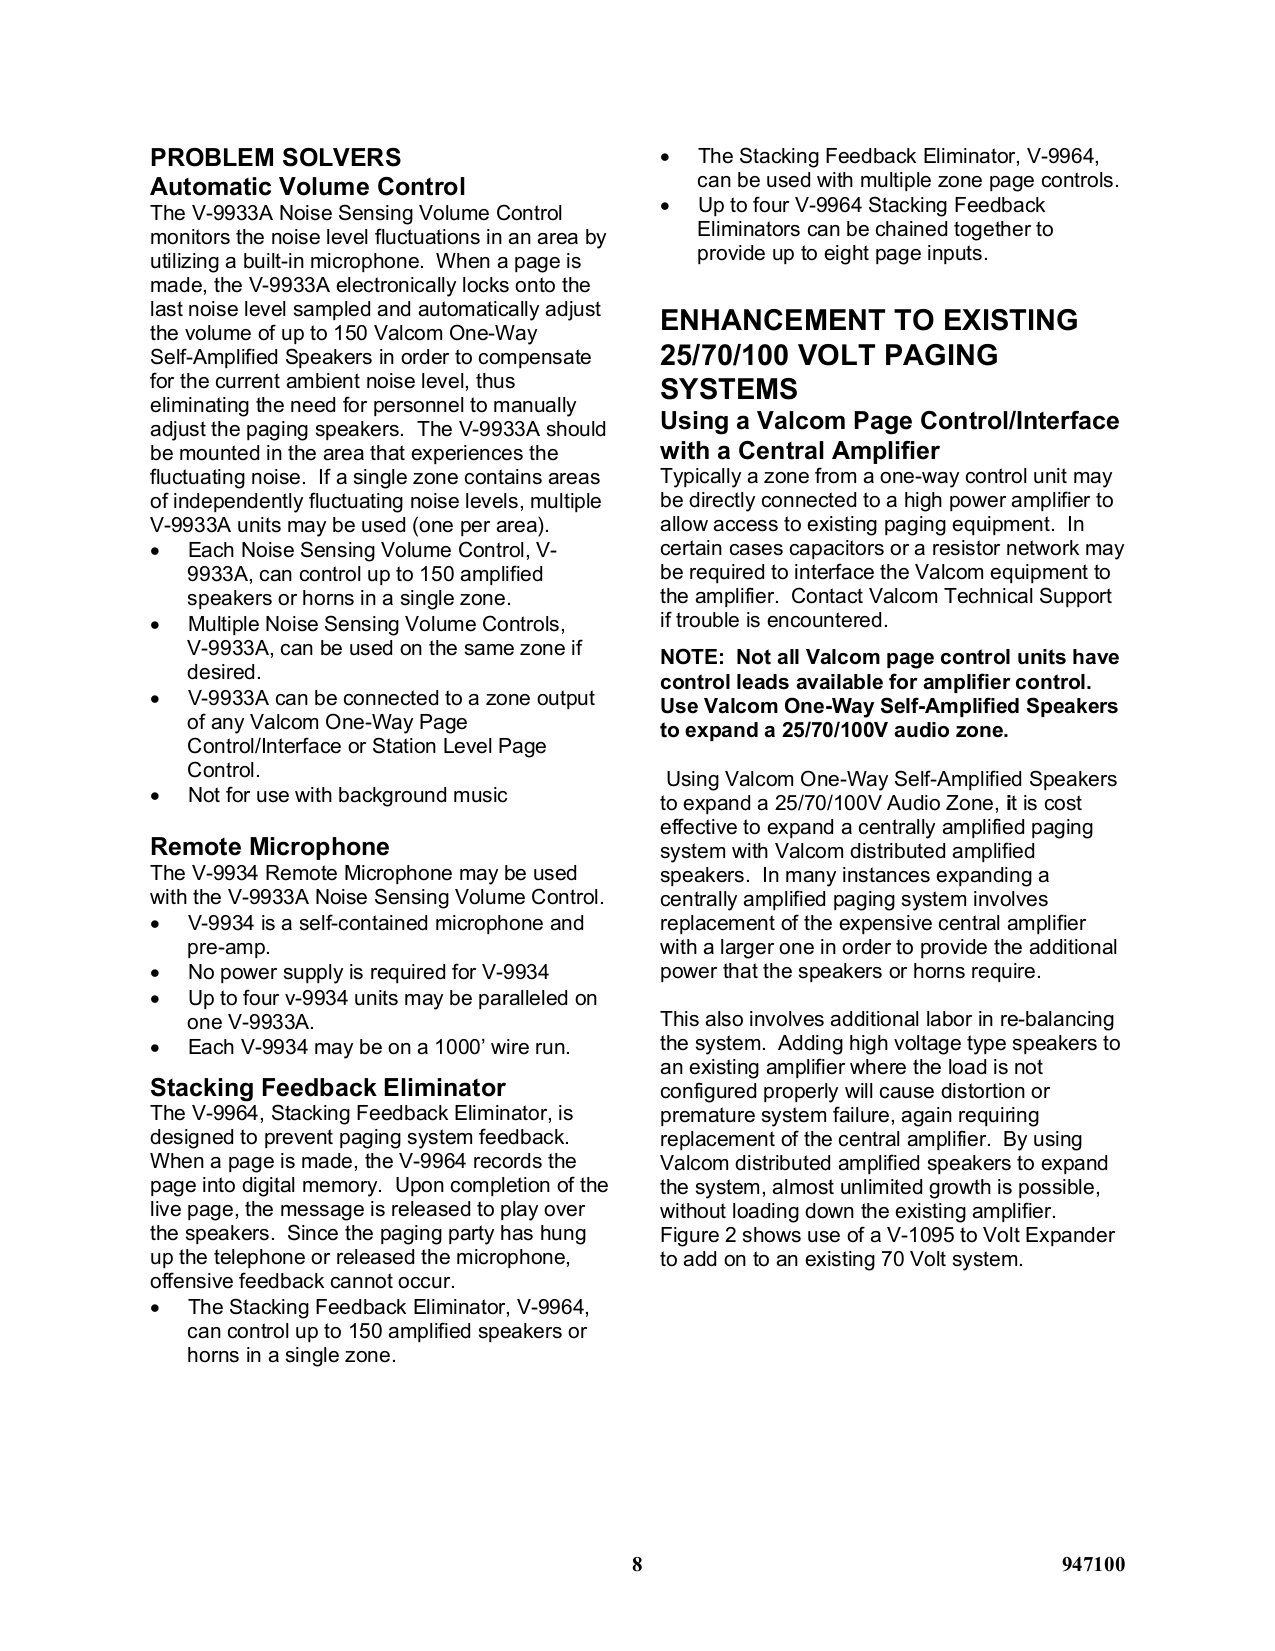 Wiring Diagram 70 Volts Amplifier Page 5 And Up Speakers Volt Volume Control Solutions